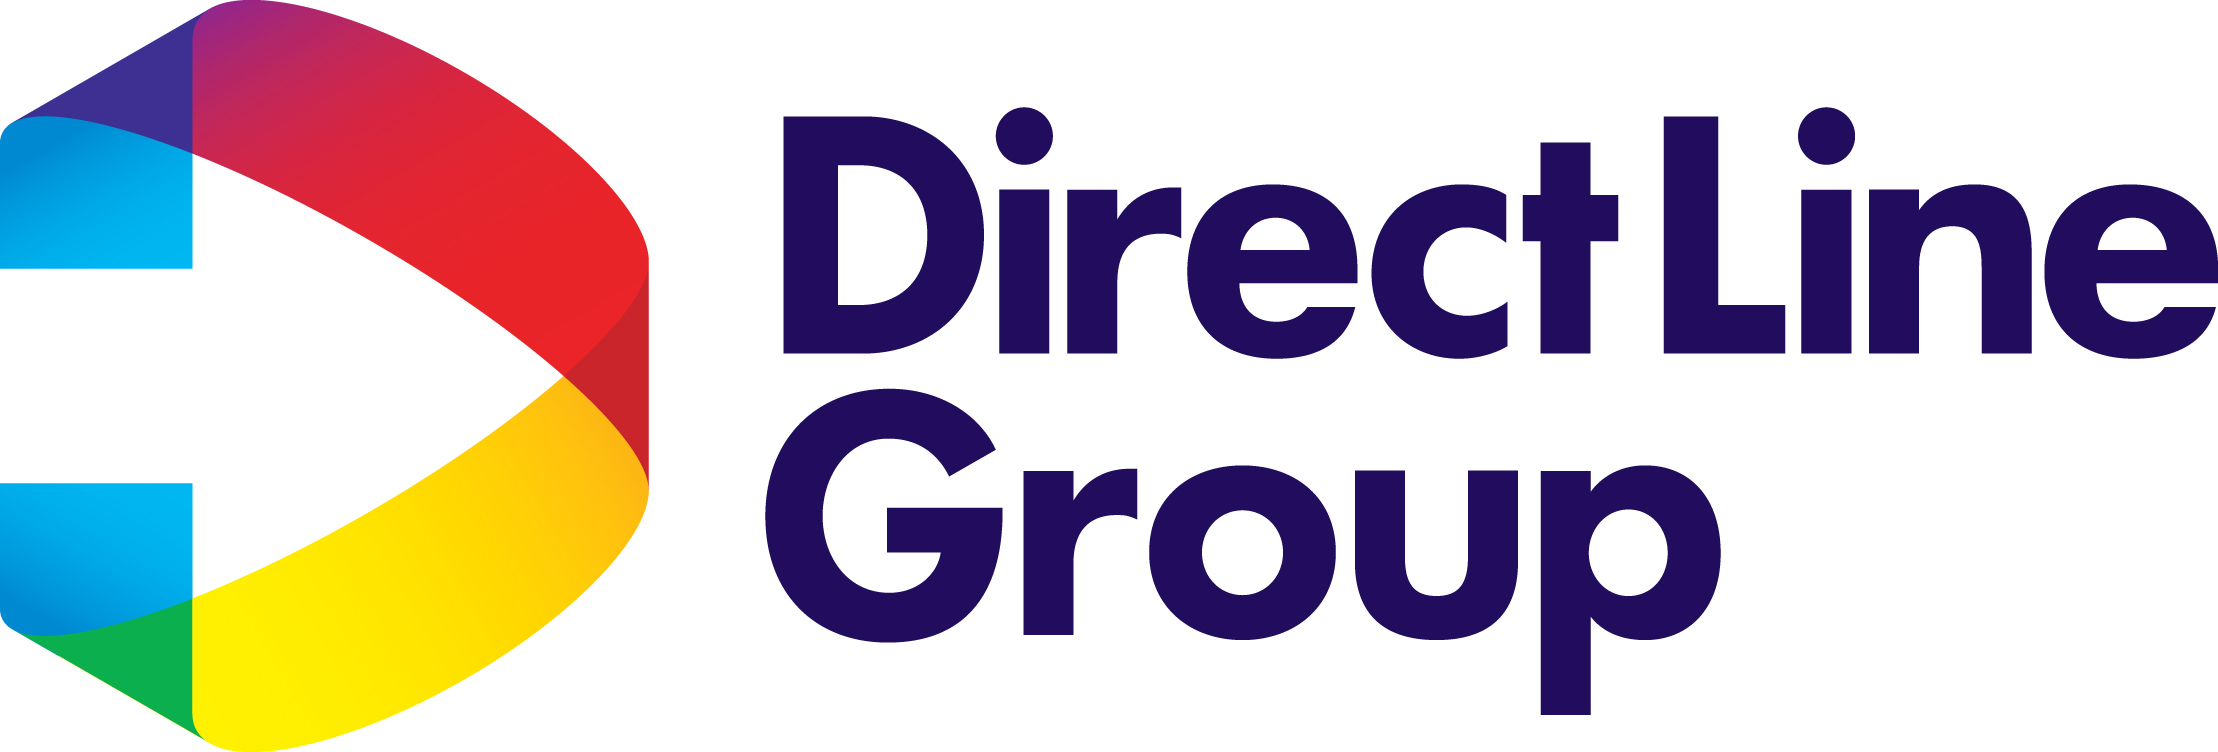 Direct Line Group.jpg